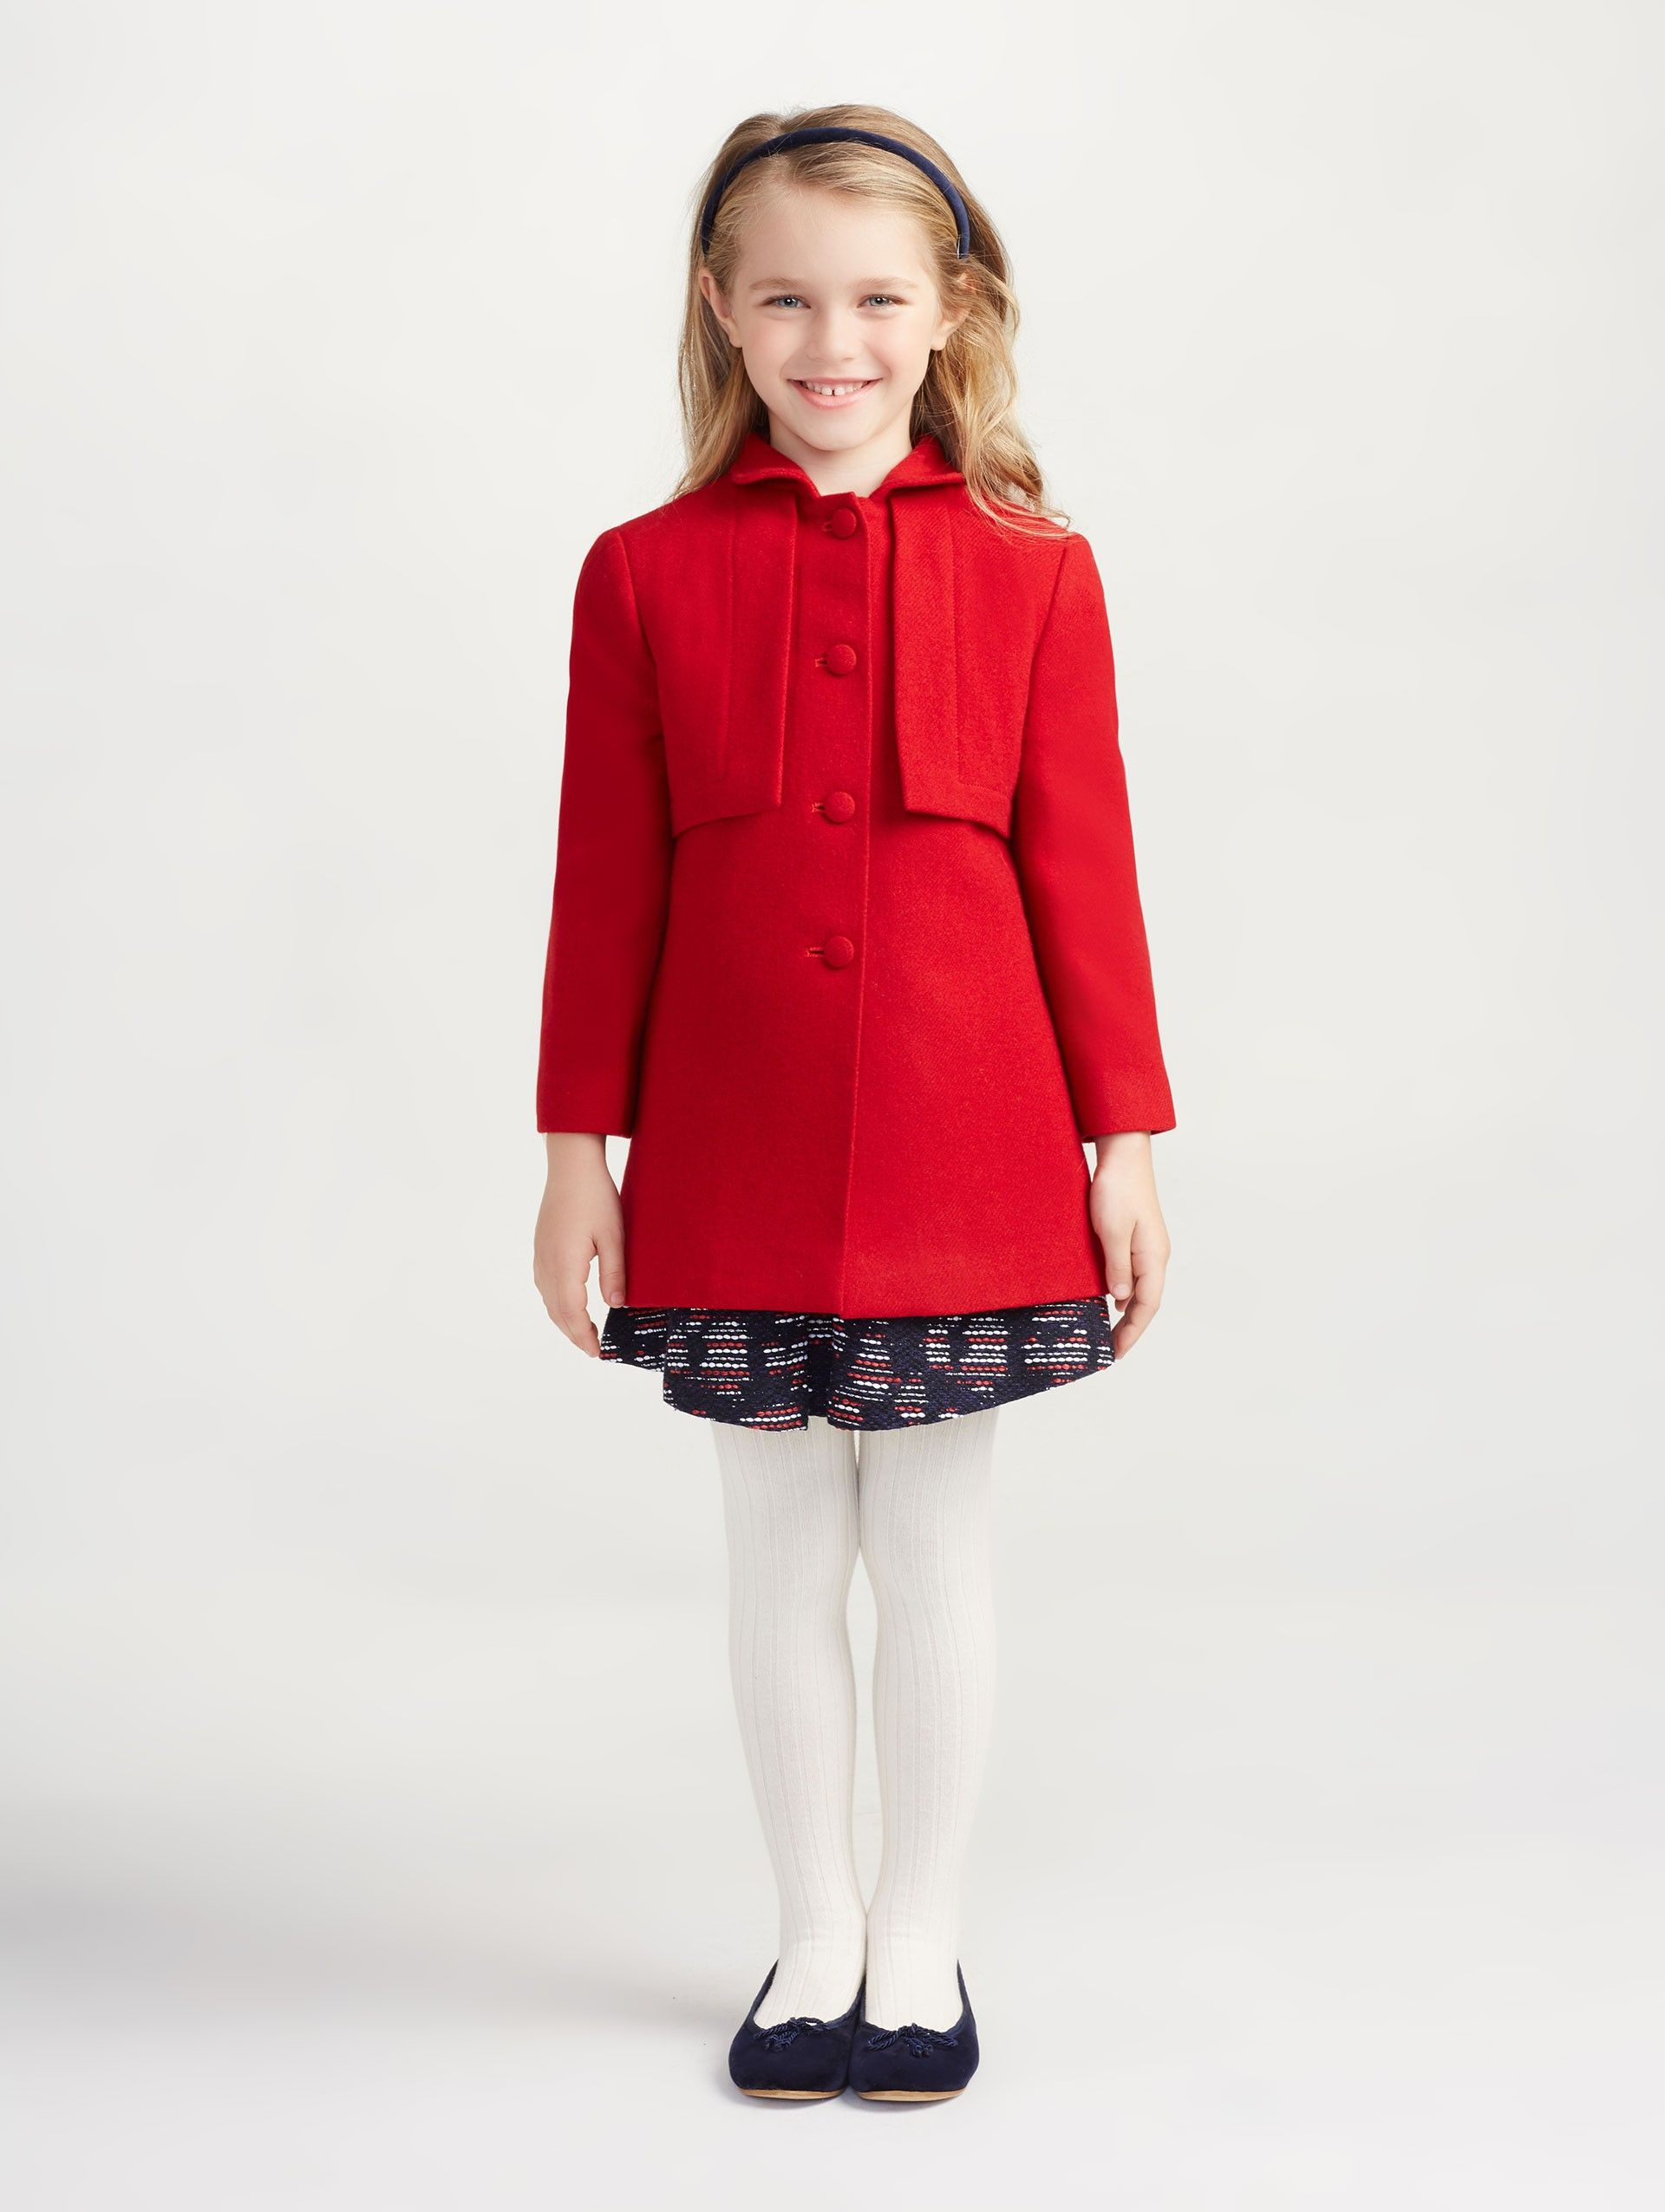 http://www.oscardelarenta.com/childrenswear/wool-flap-collar-coat ...